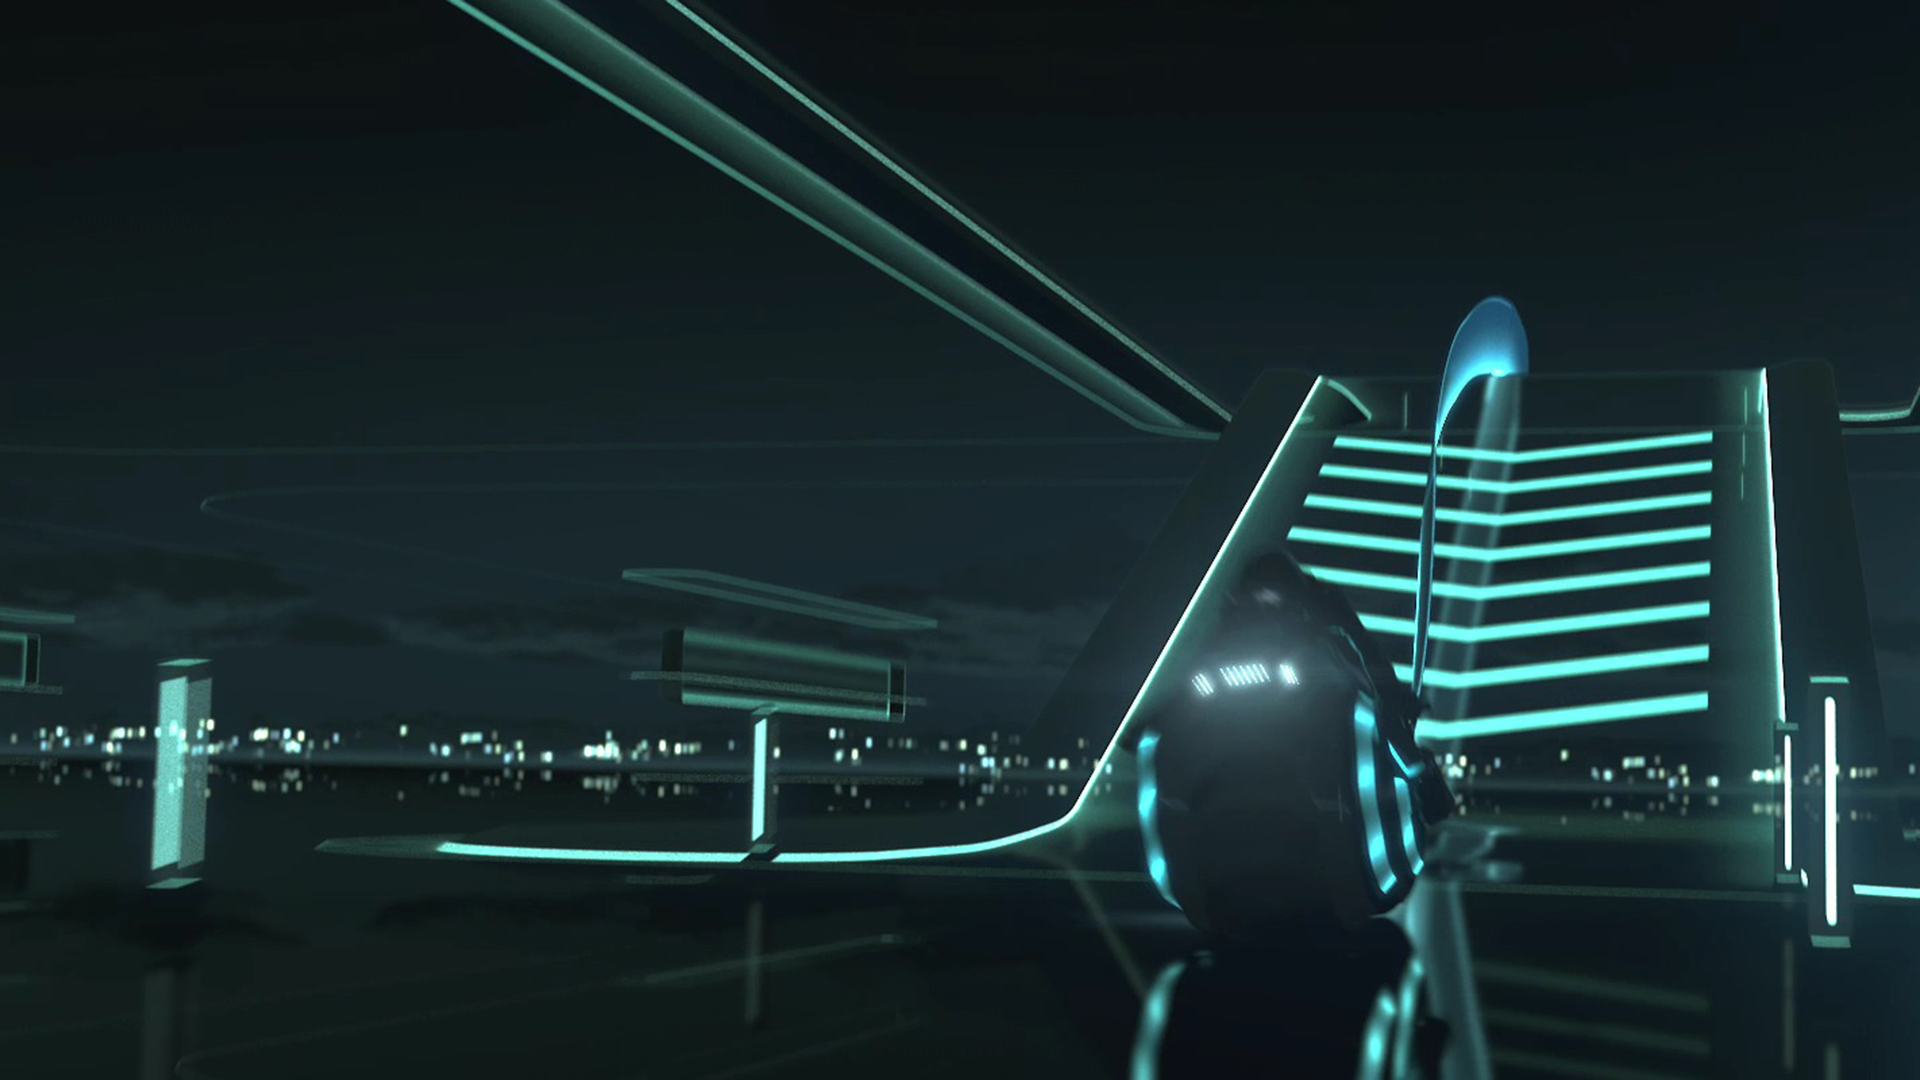 tron legacy | free desktop wallpapers for widescreen, hd and mobile